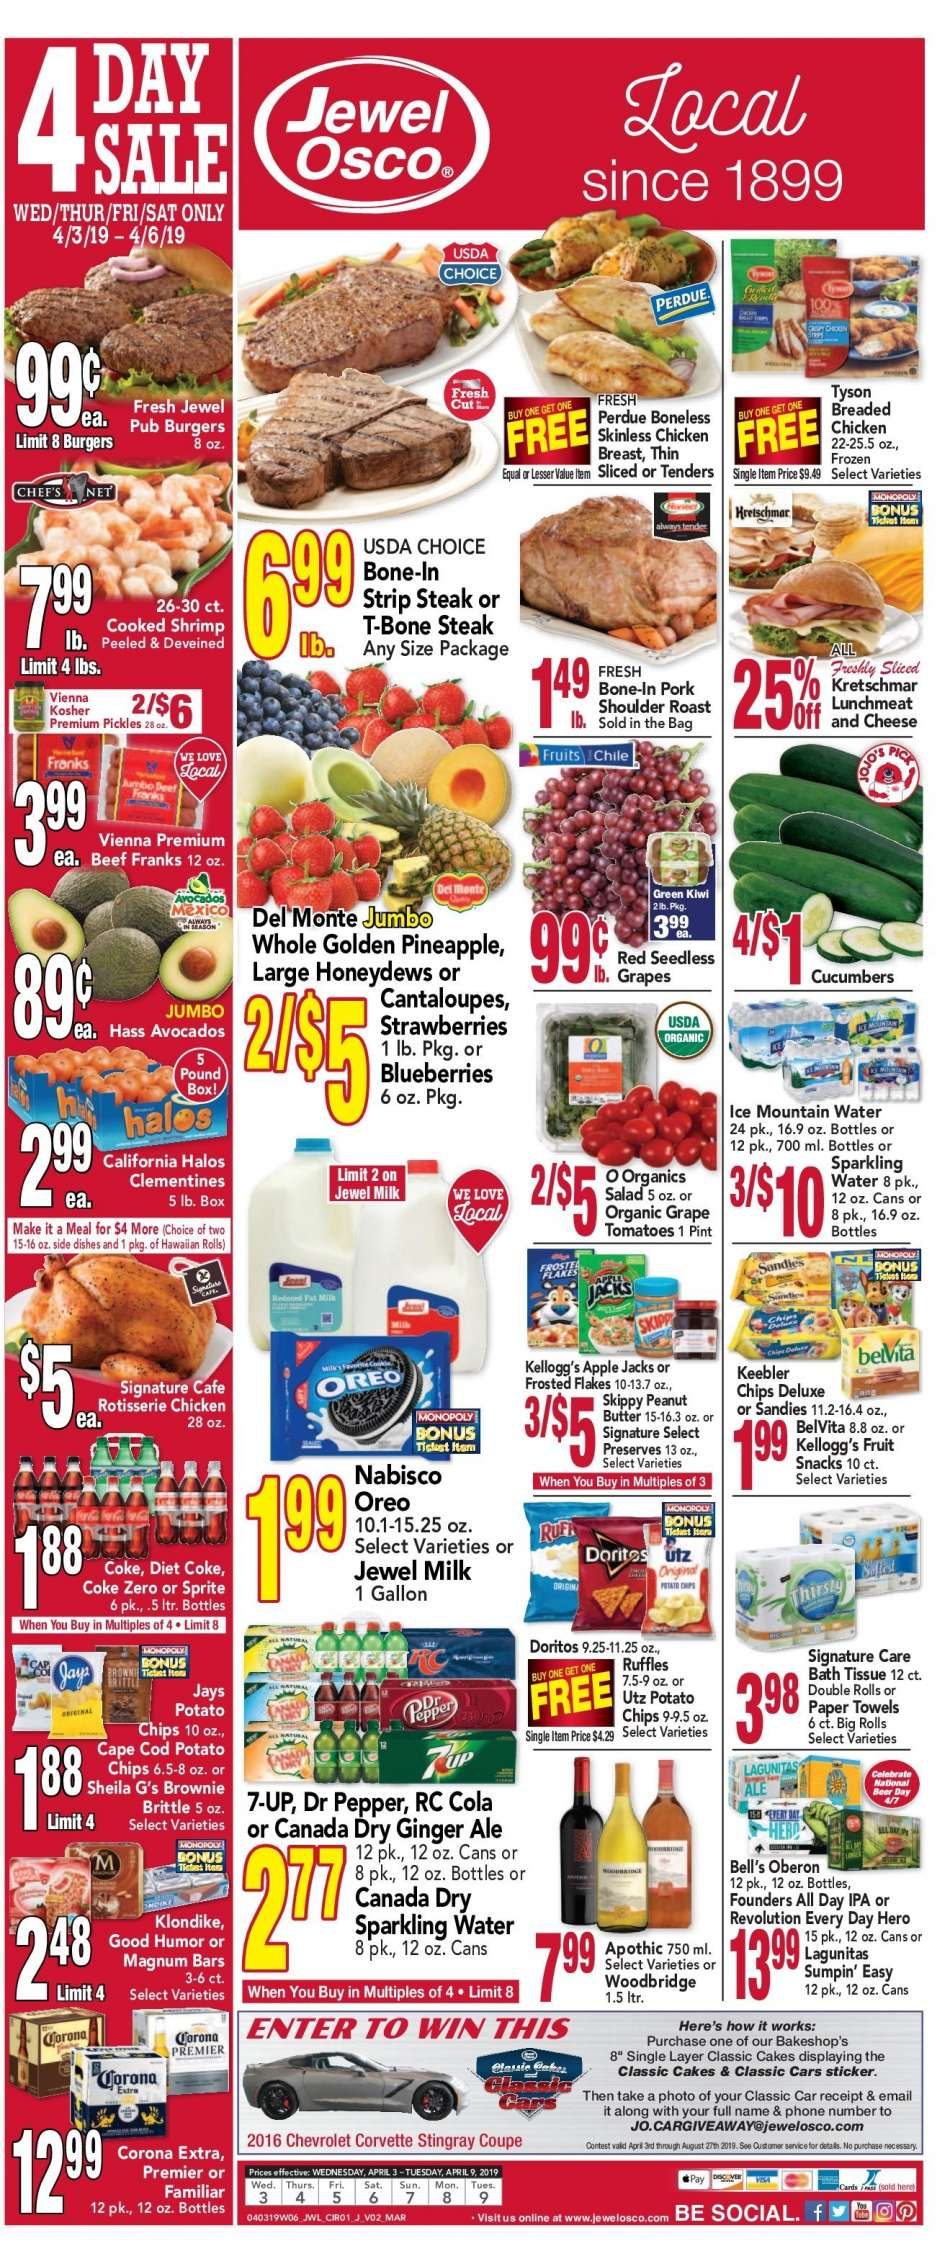 Weekly Sales Circular >> Jewel Osco Flyer 04 03 2019 04 09 2019 Weekly Ads Us